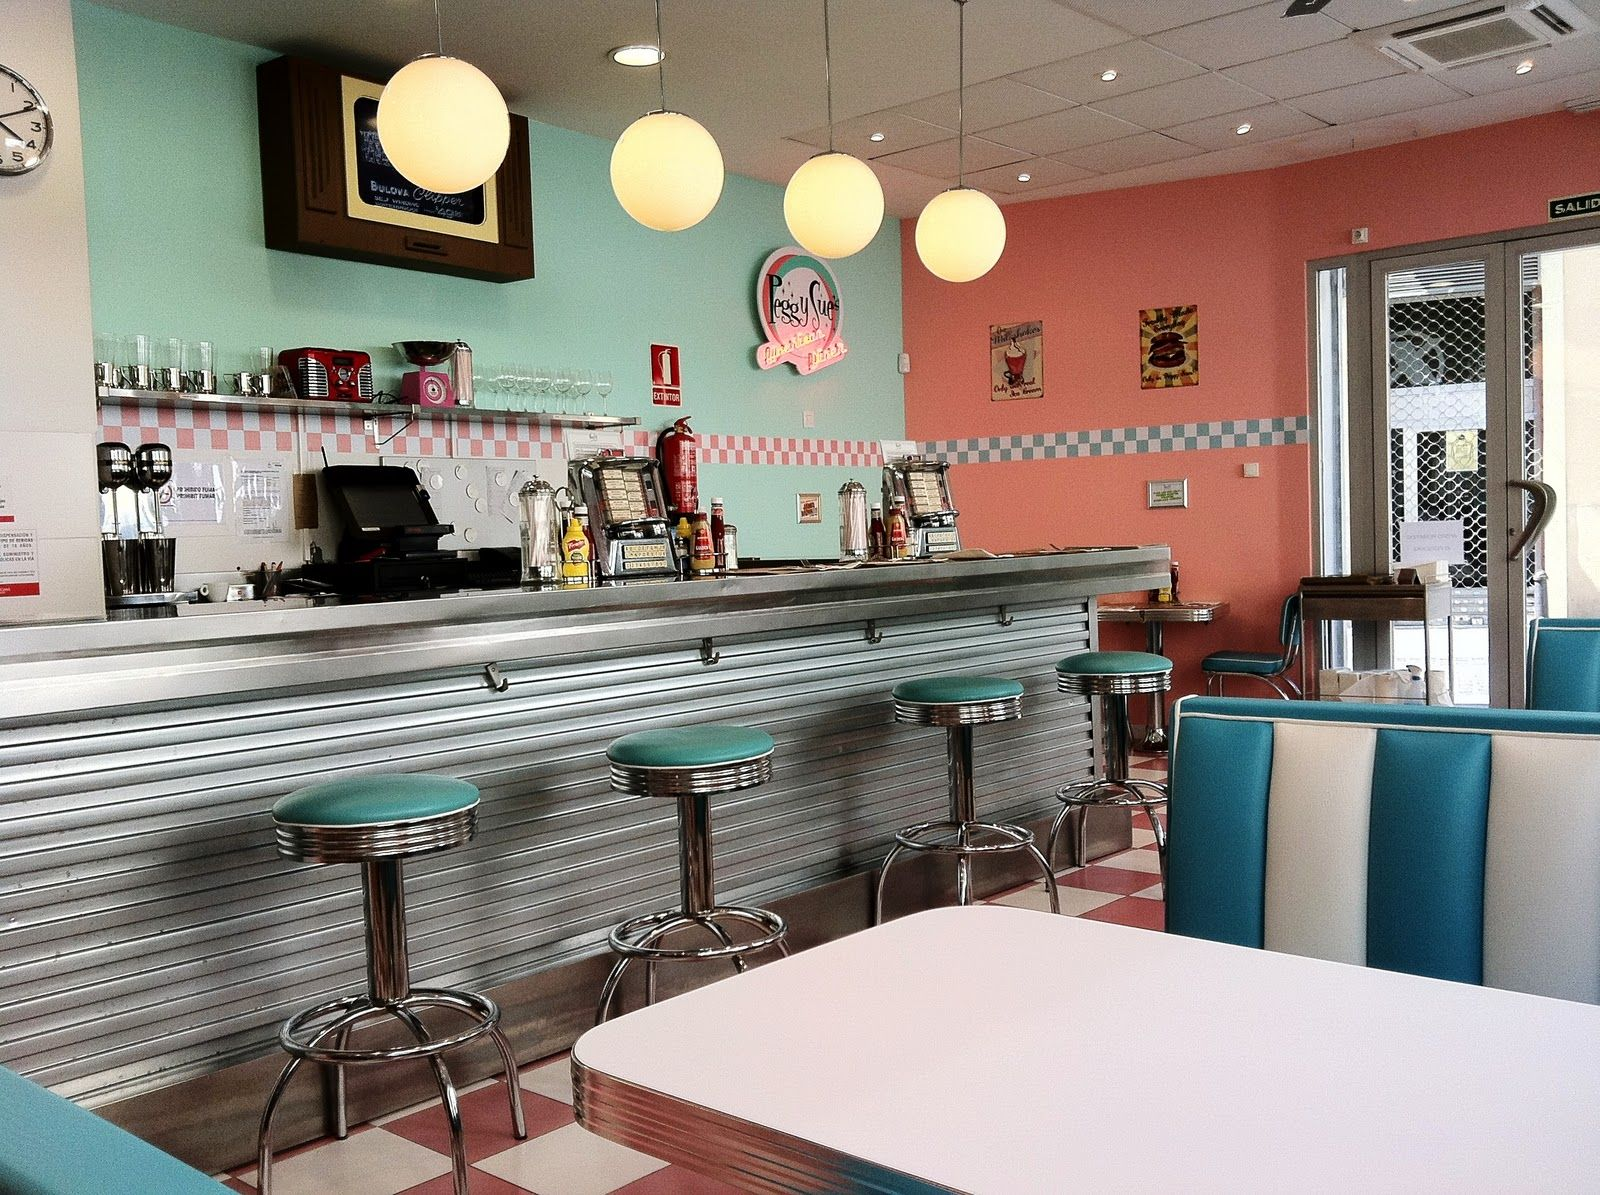 1950s decor 1950 39 s style american diner in valencia. Black Bedroom Furniture Sets. Home Design Ideas